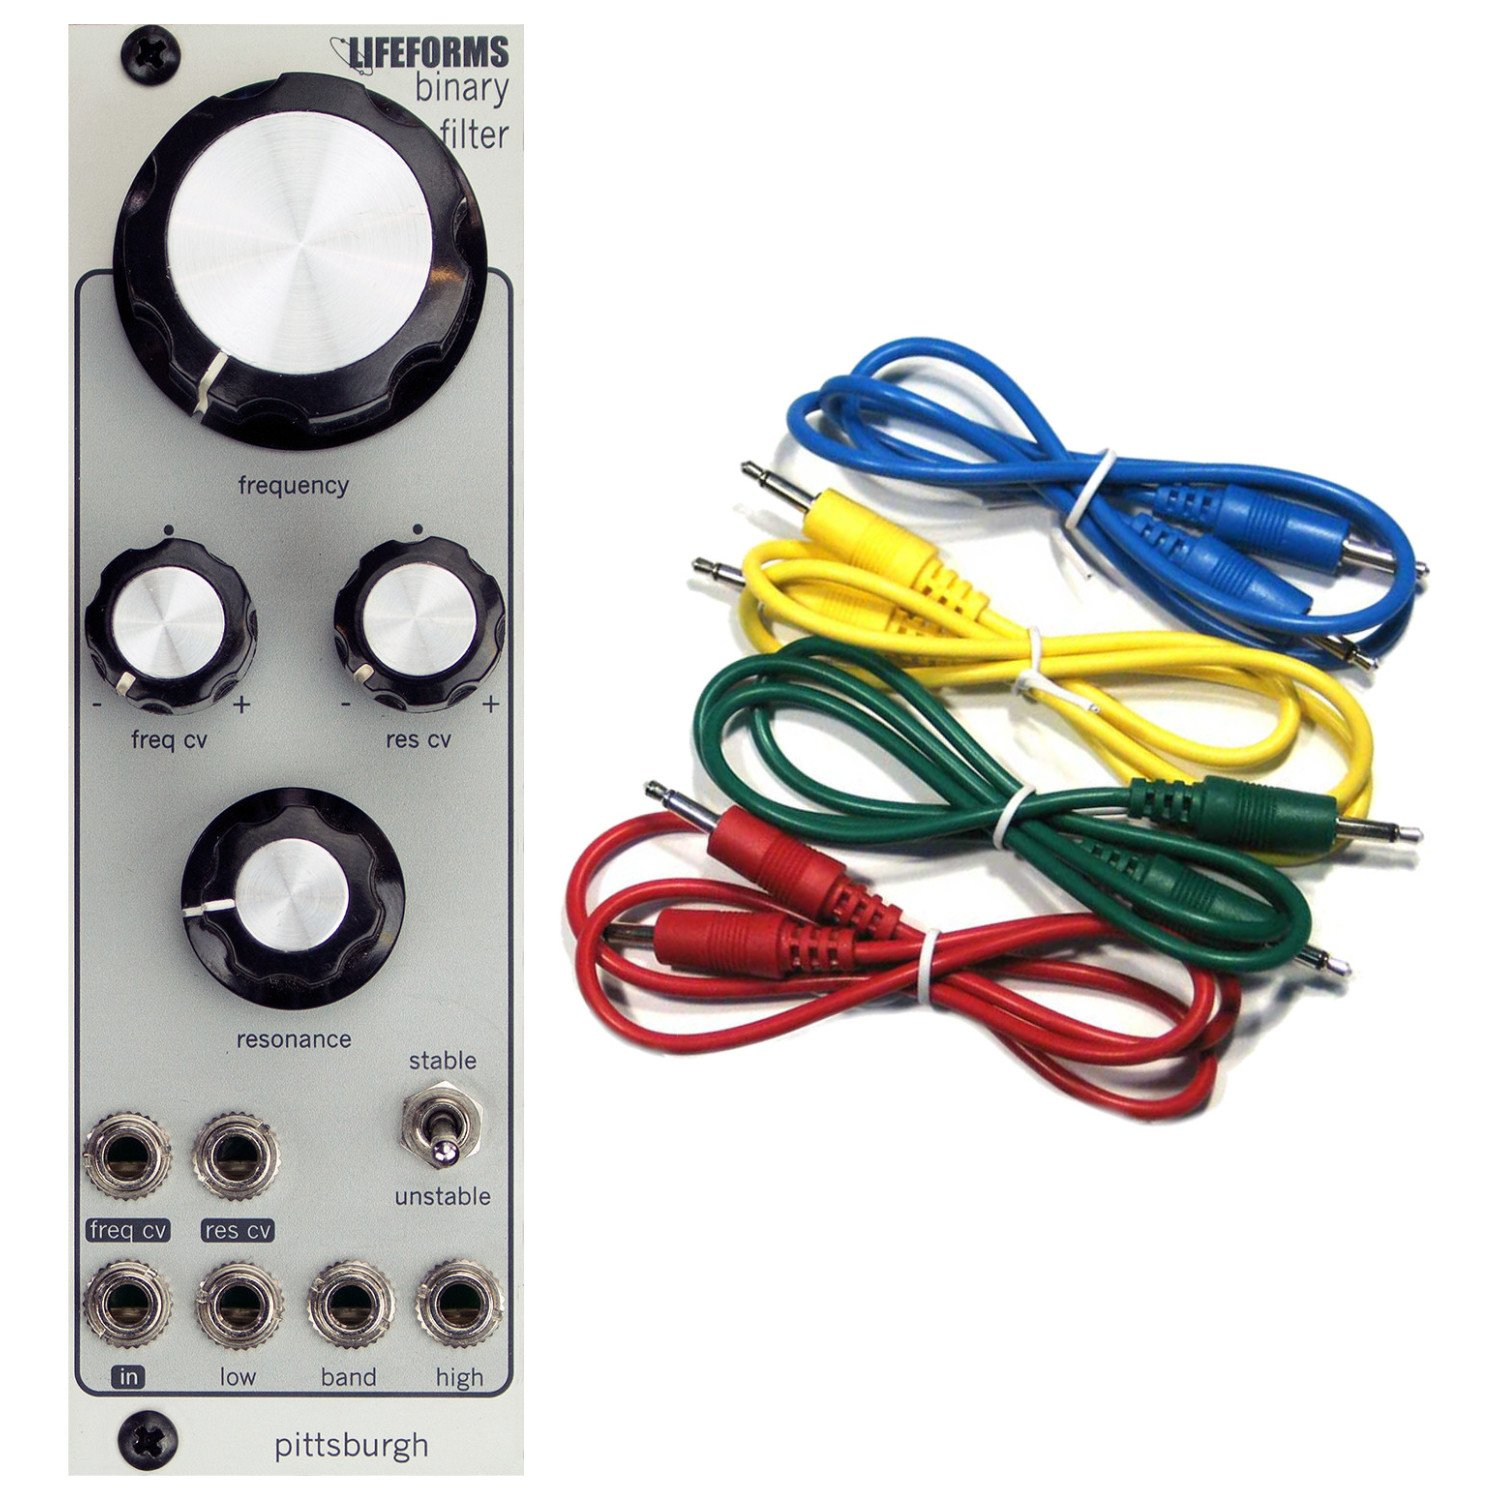 Pittsburgh Modular Lifeforms Binary Filter Eurorack Synth Module w/ 4 Cables